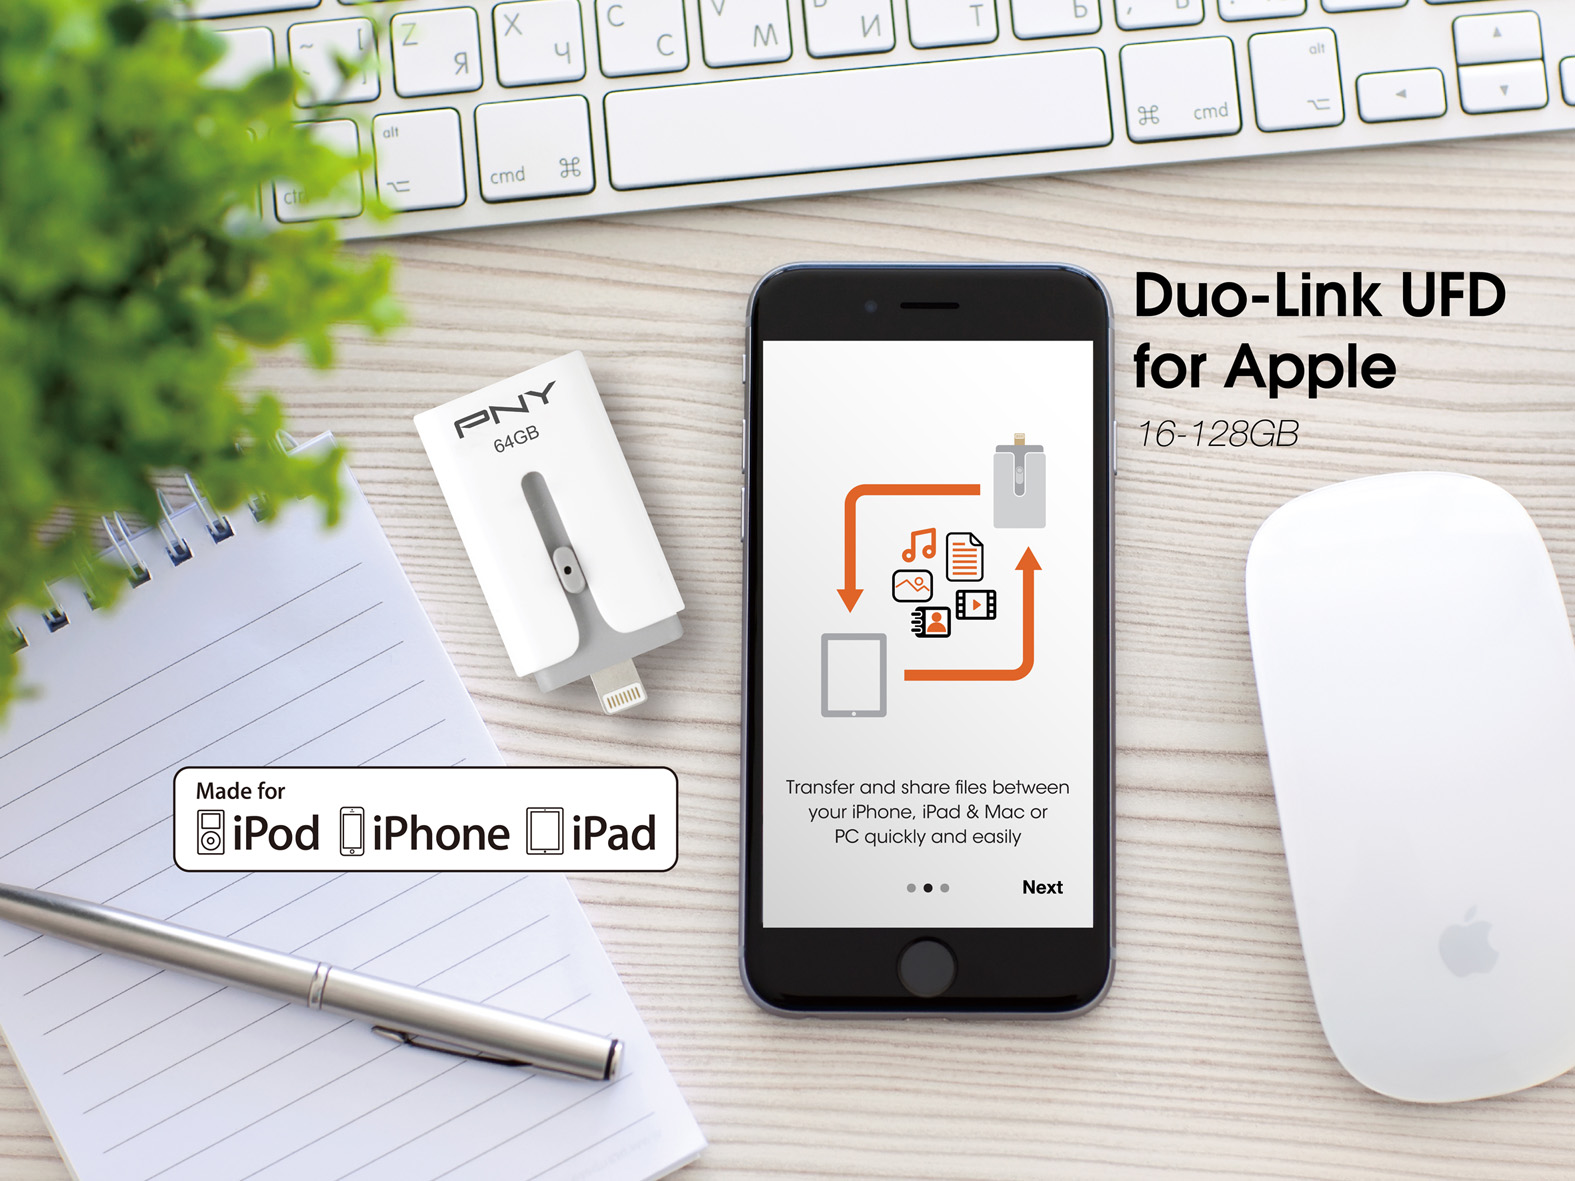 PNY DUO-Link UFD for Apple DUO-Link M